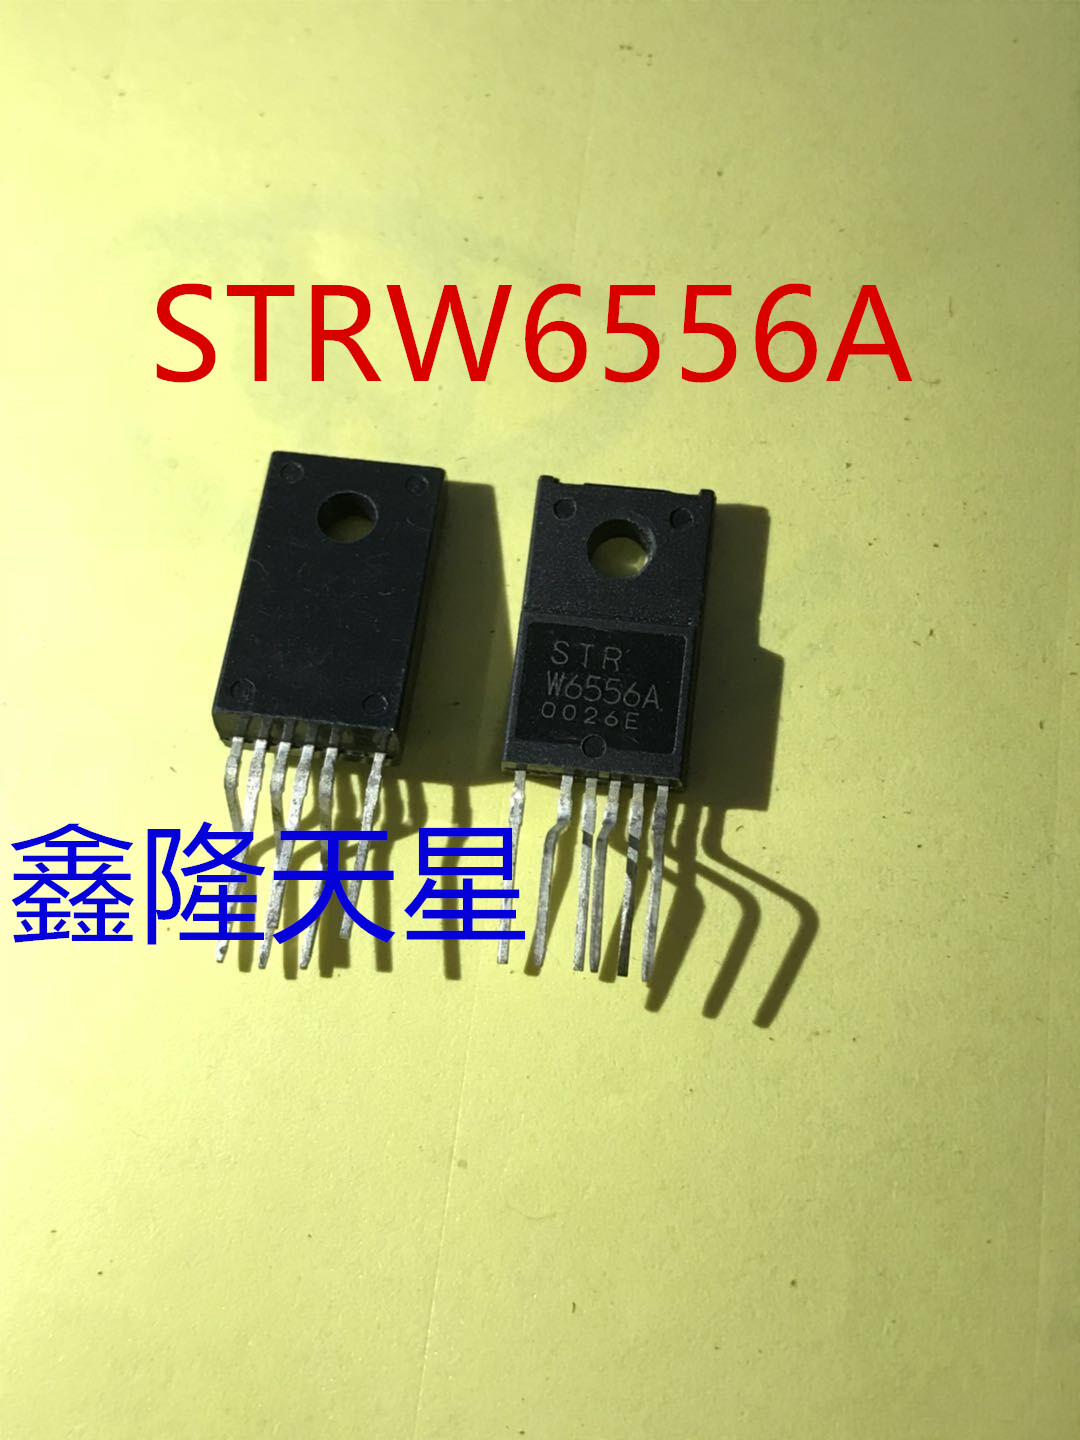 2PCS -1lot STR-W6556A LCD power tube can be used as soon as it is changed, can be straight shot STRW6556A 6556A ZIP6 image